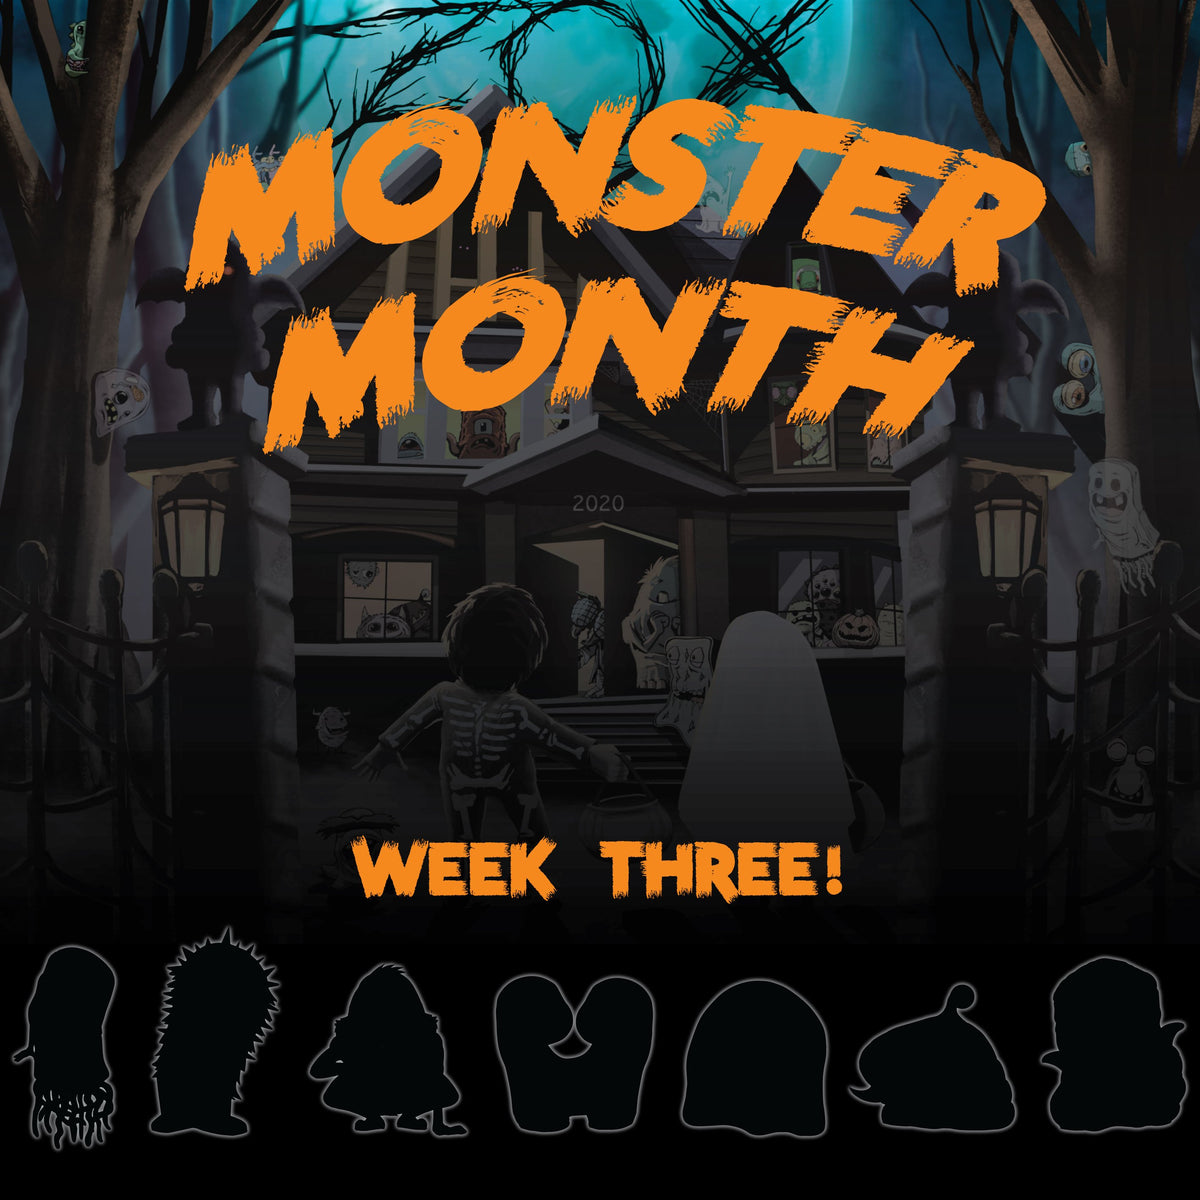 Monster Month Week 3 Pack - Day 3 in place of Day 20